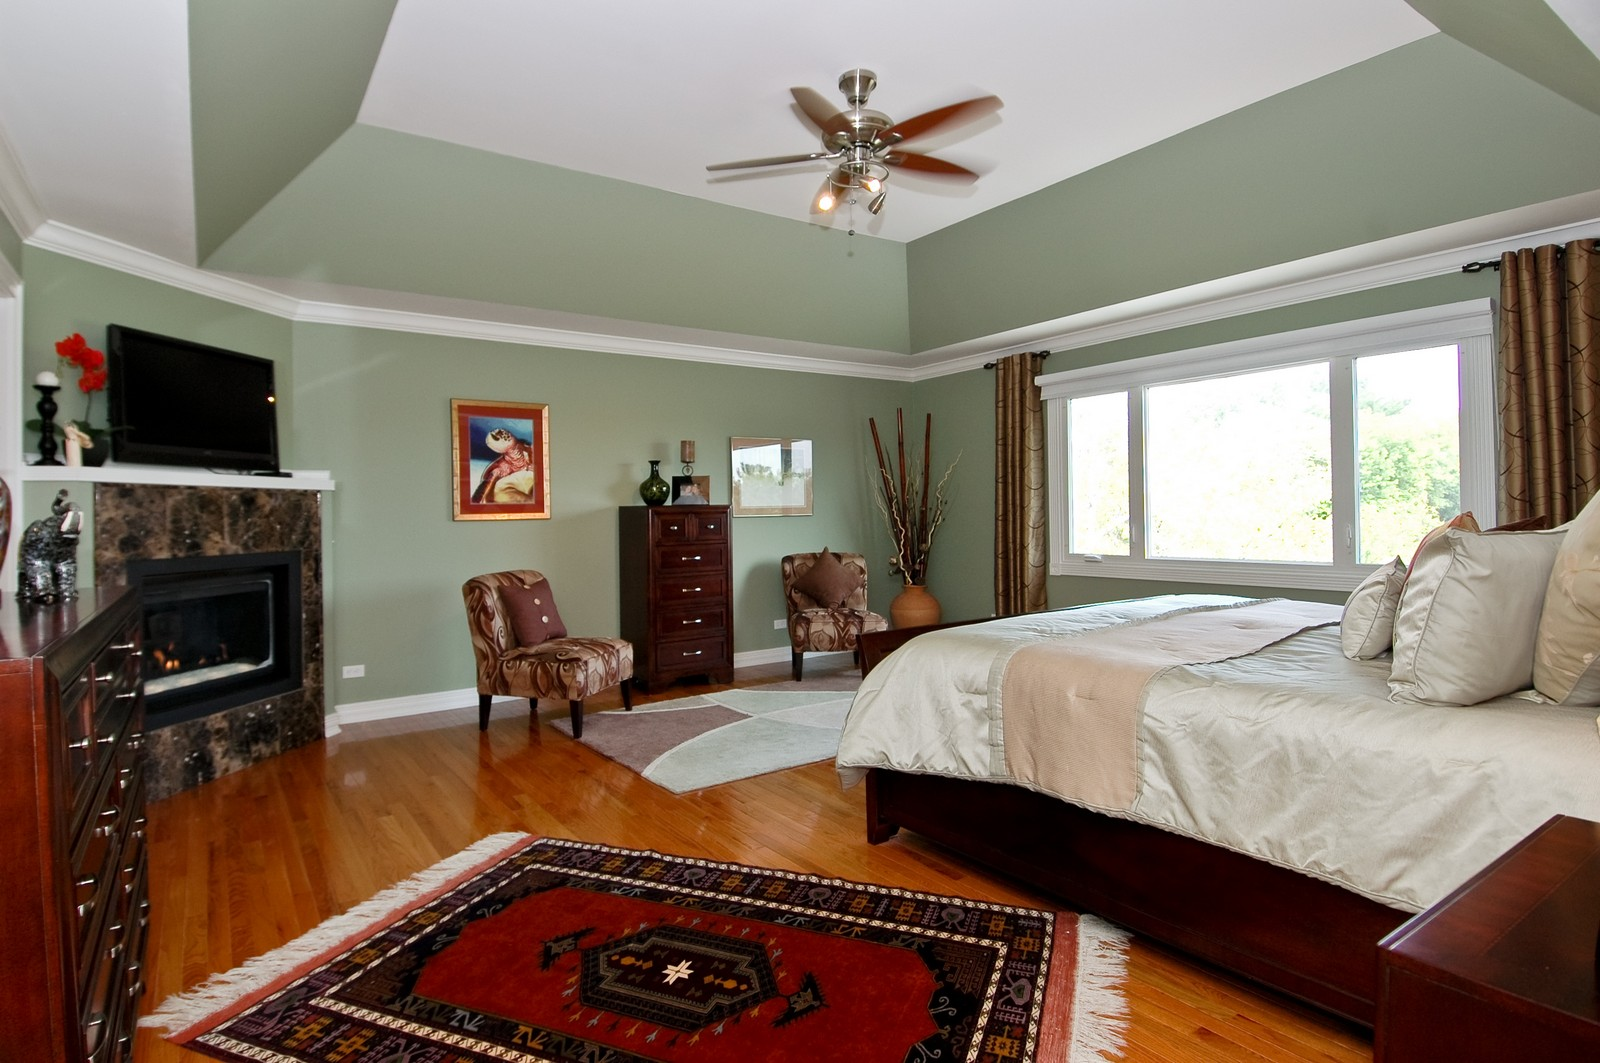 Real Estate Photography - 9015 Loch Glen Dr, Lakewood, IL, 60014 - Master Bedroom